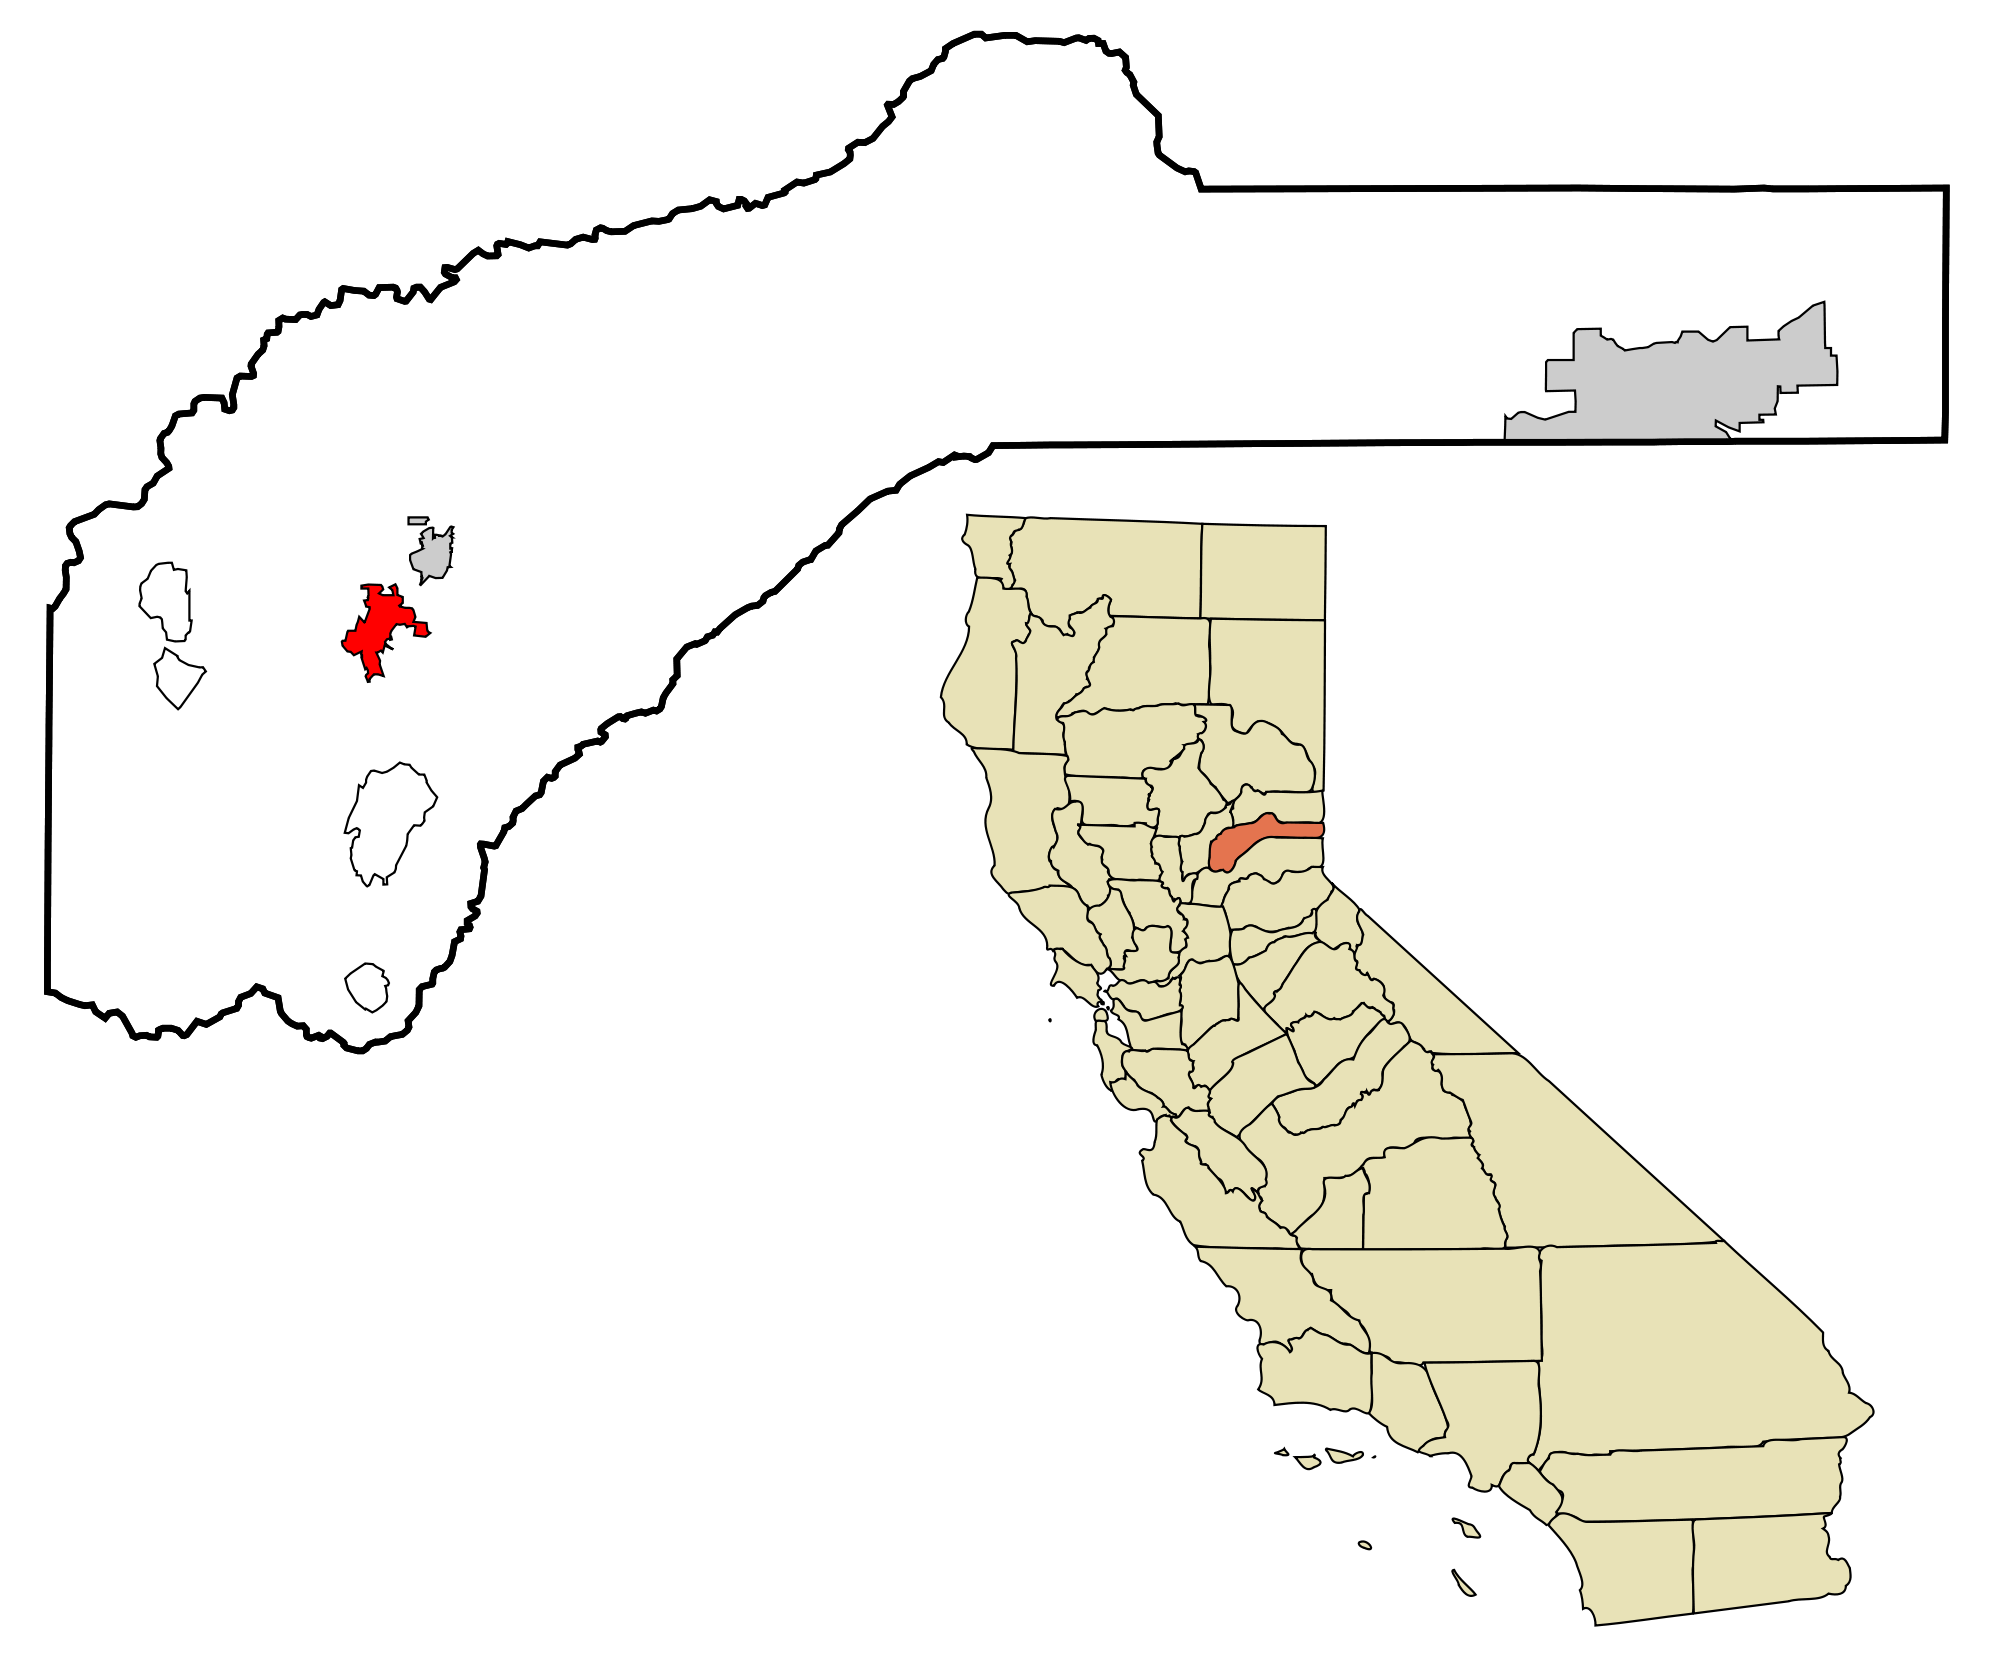 California svg shape. File nevada county incorporated